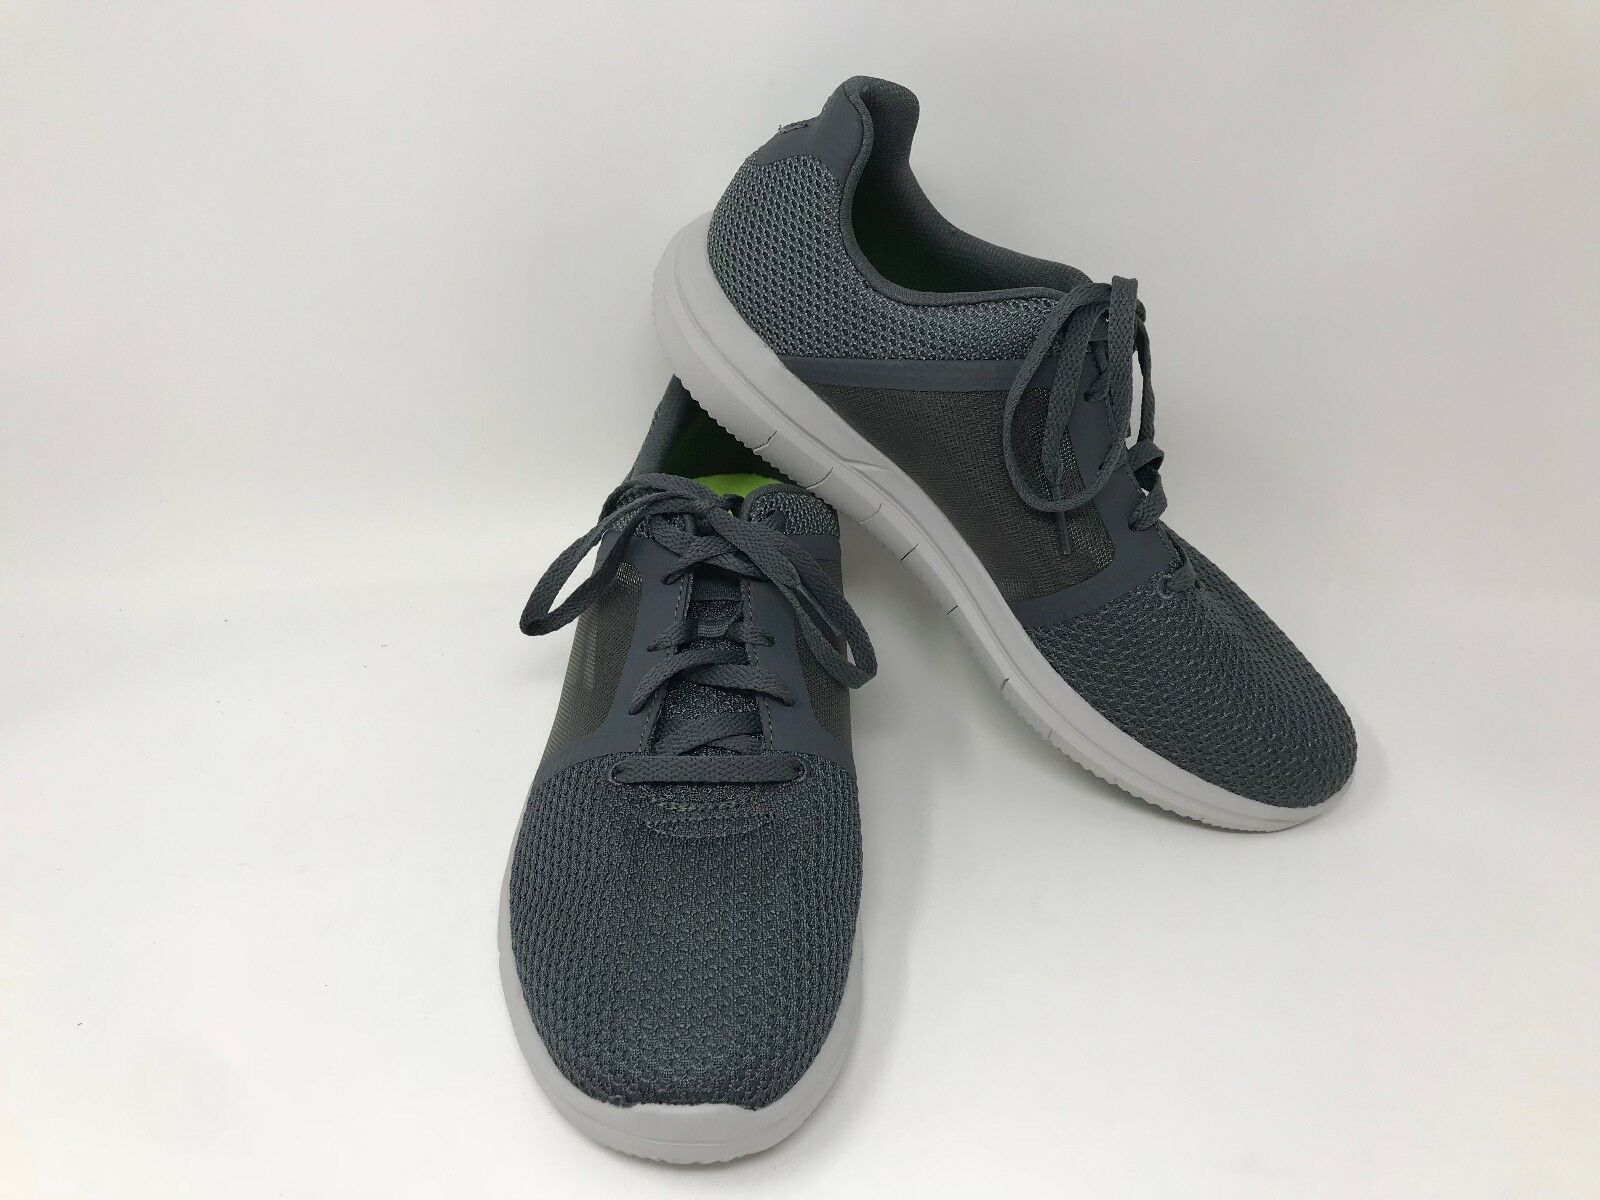 New! Men's Skechers 54014 Go Flex 2 Athletic Shoes - Gharcoal I19 Wild casual shoes